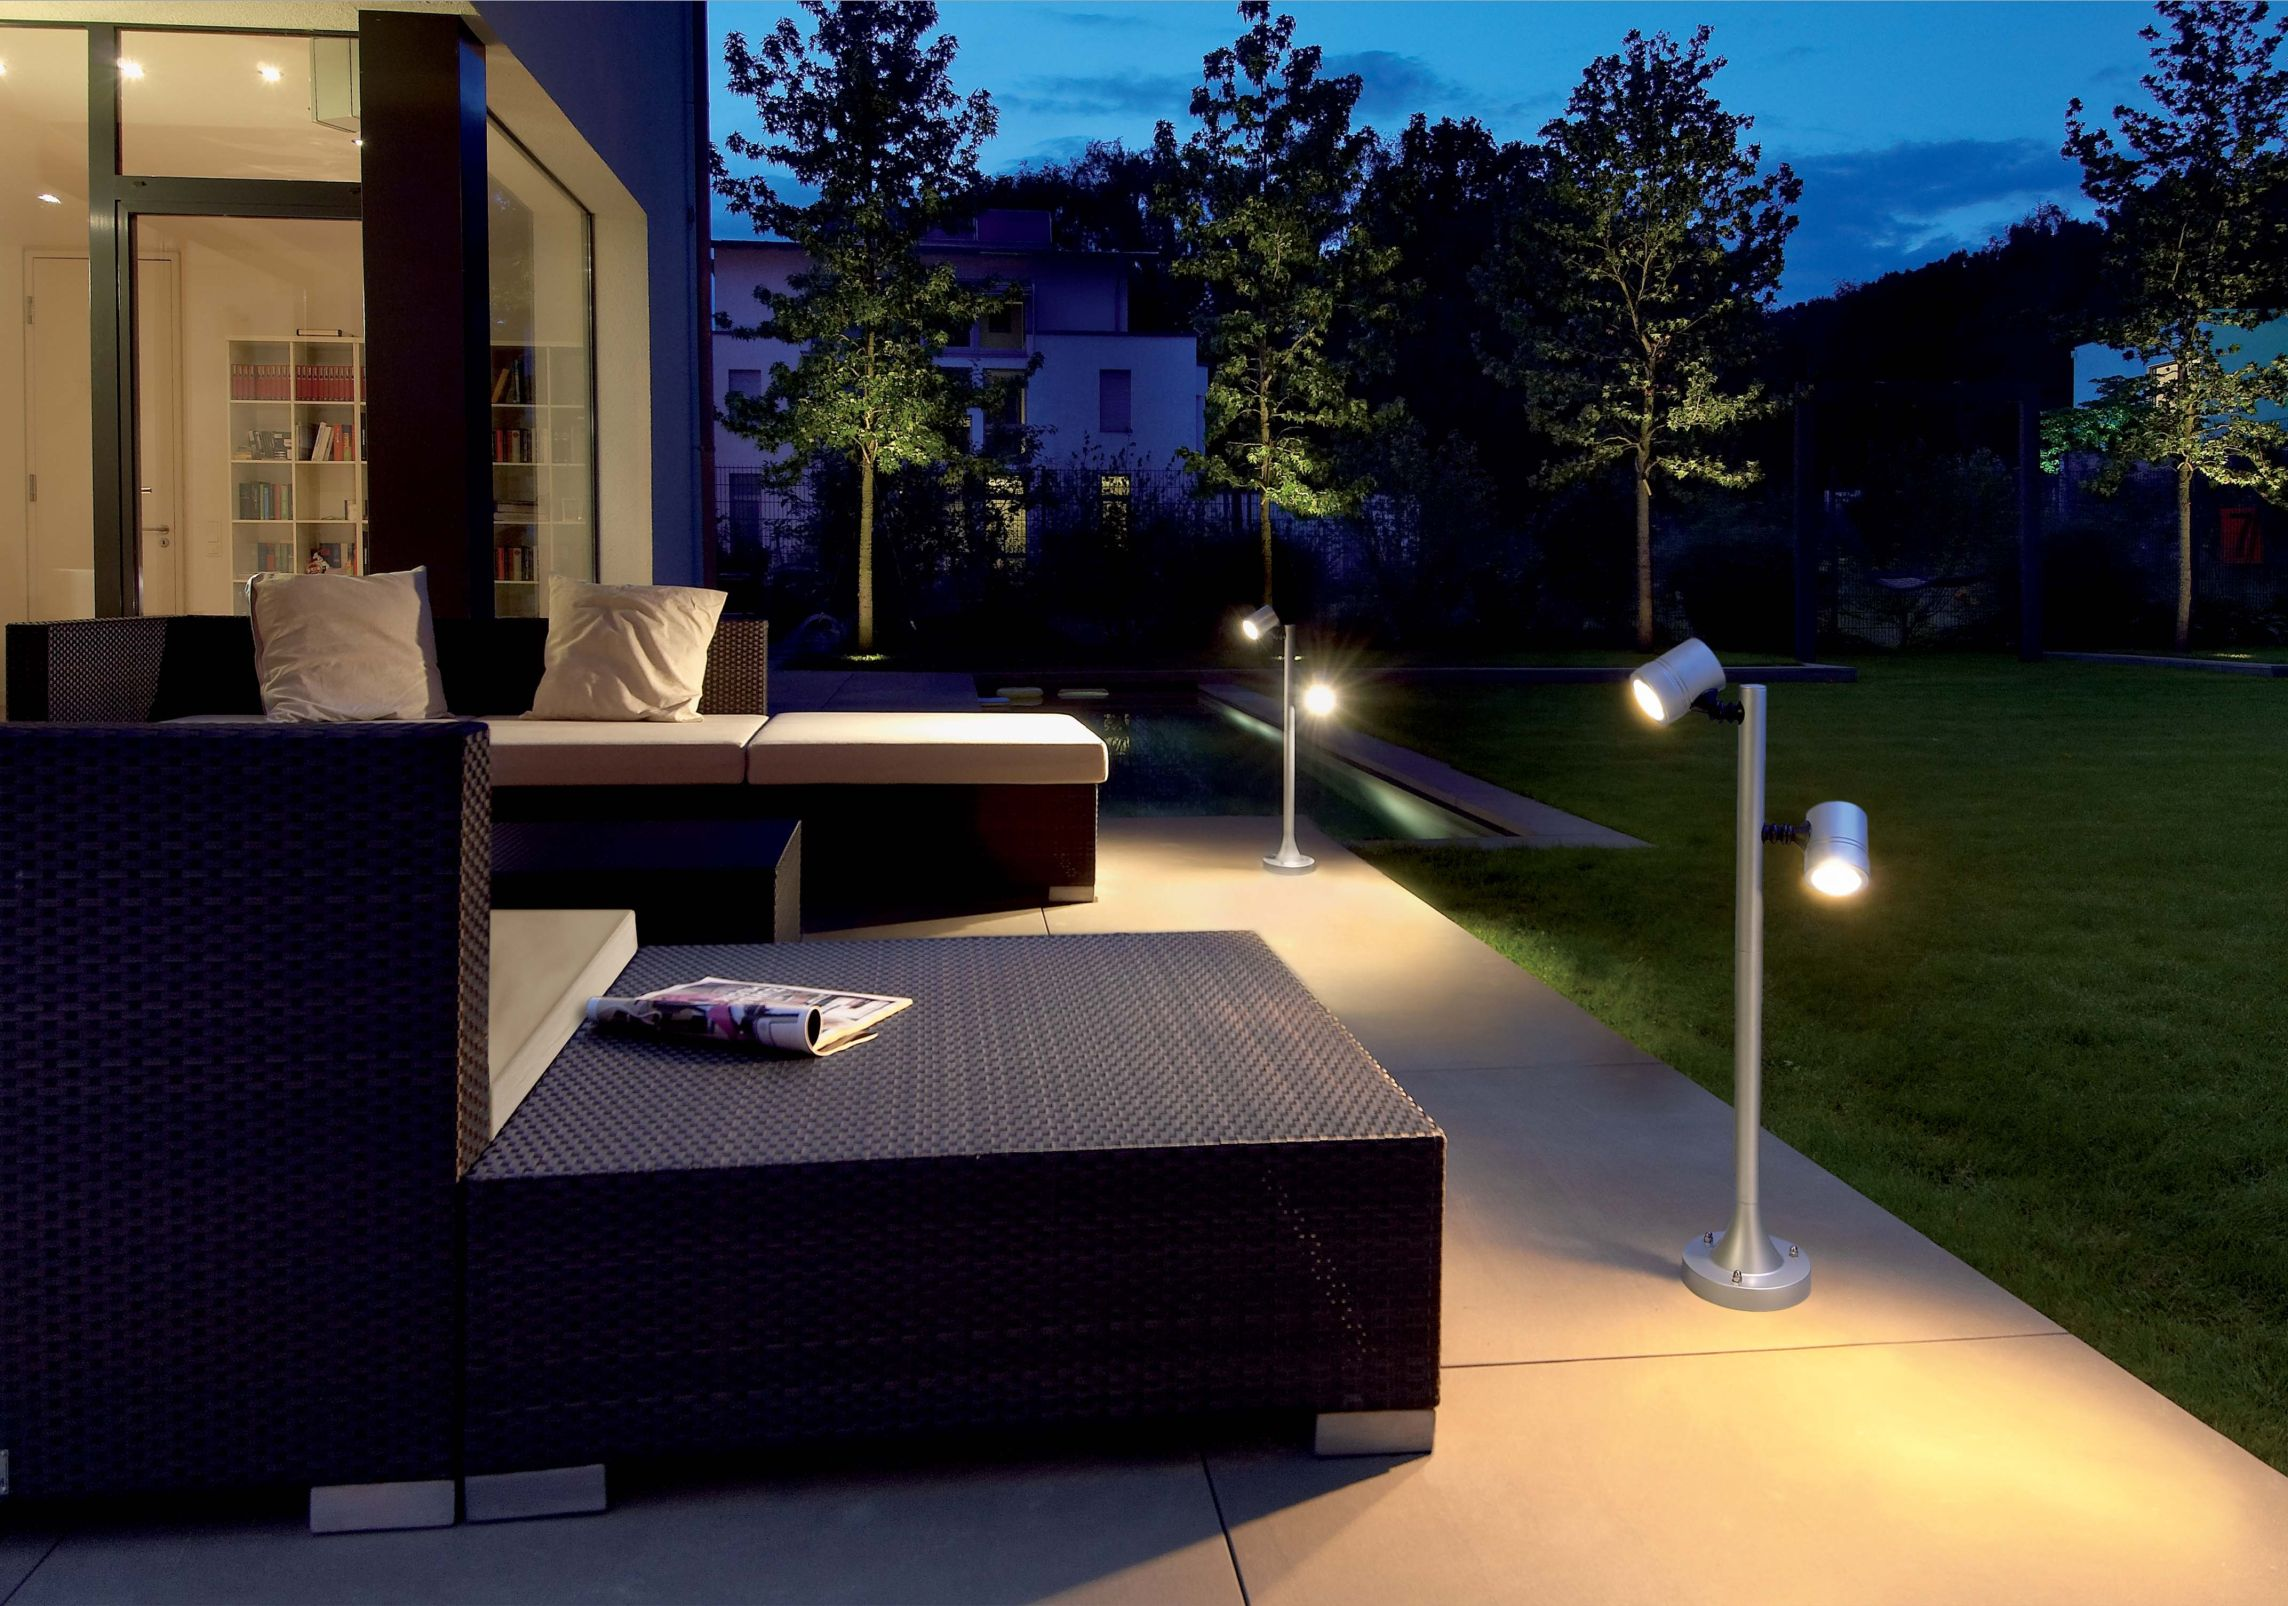 sectional living room design high end chairs outdoor gazebo lighting ideas | homesfeed